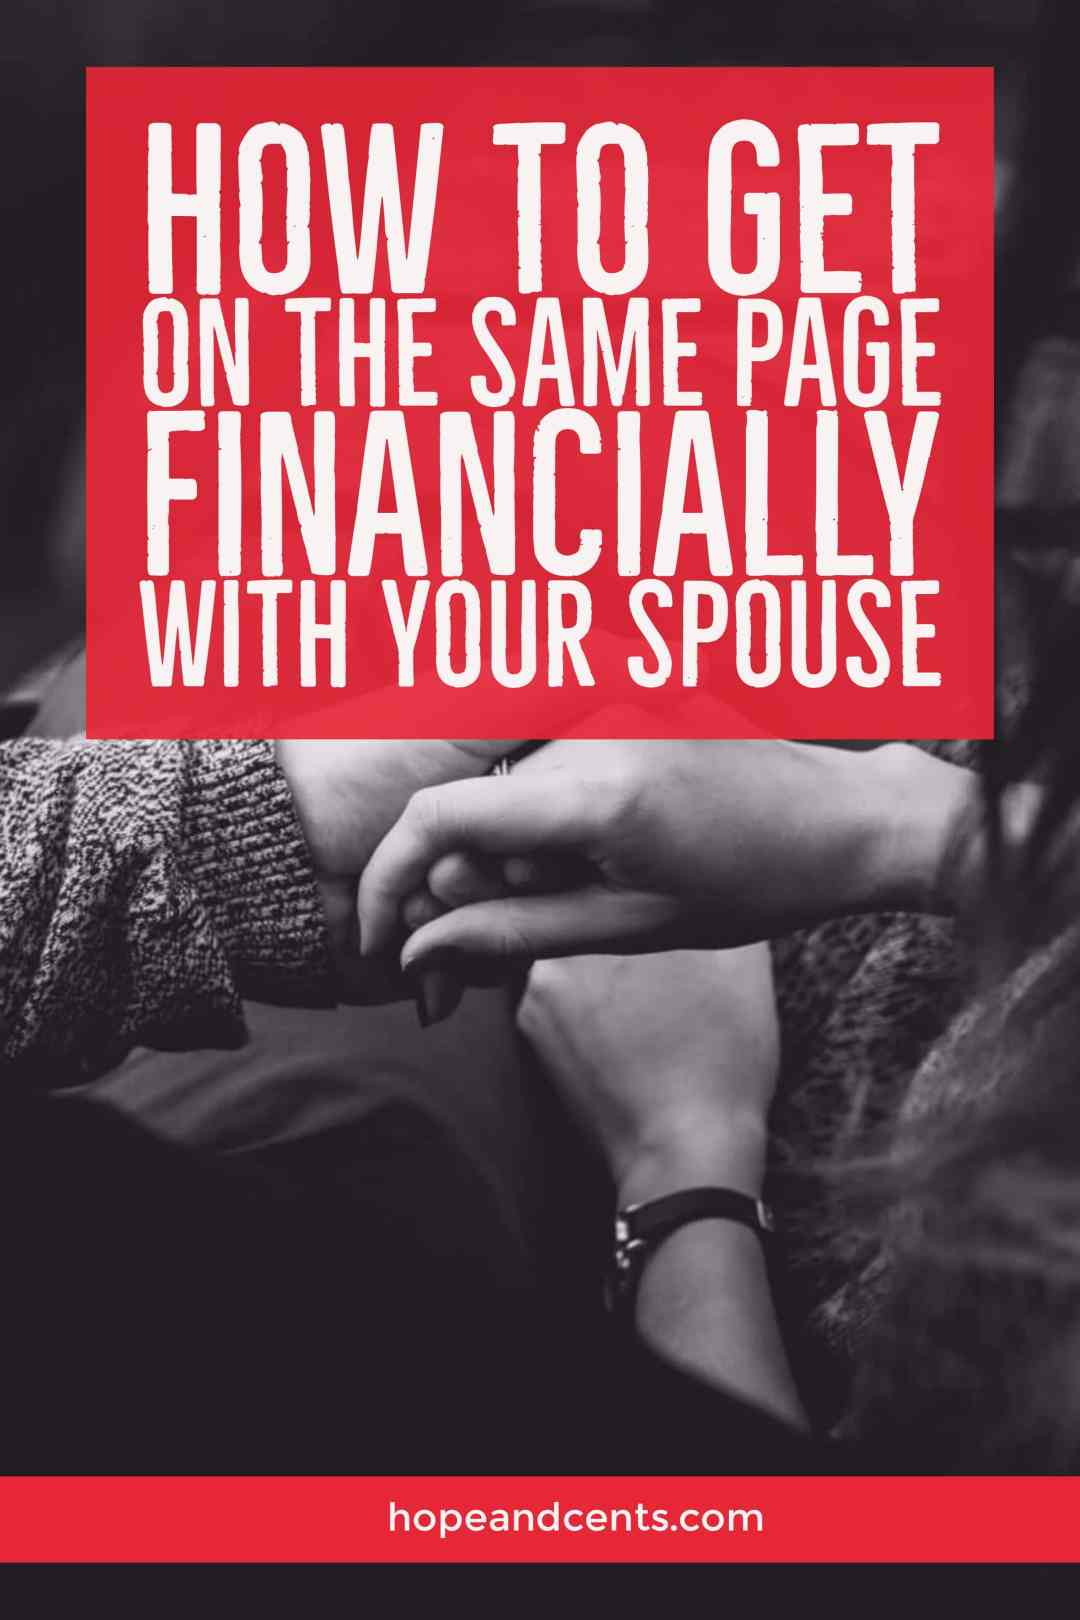 Do you have a spouse that won't work with you on the finances? Are you always arguing about money? Love these tips about how to get on the same page financially with your spouse!